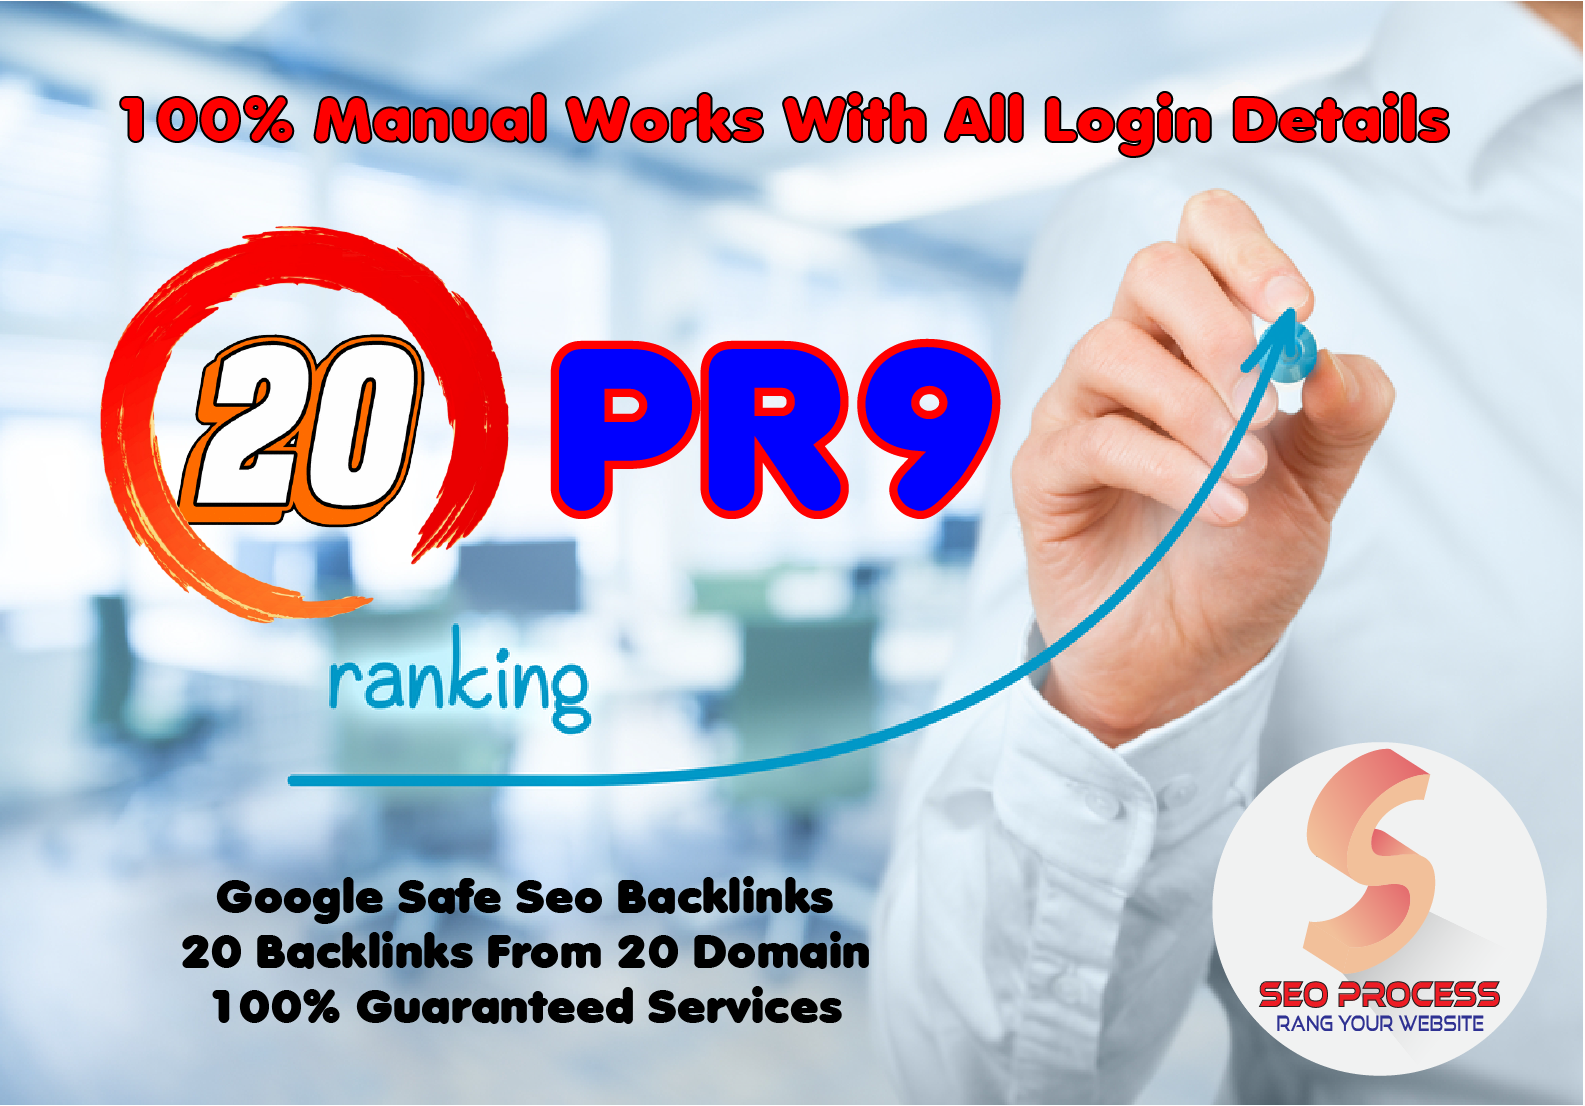 20 Pr9 - 80+ DA High Quality SEO Domain Authority Permanent Backlinks - Fire Your Google Ranking